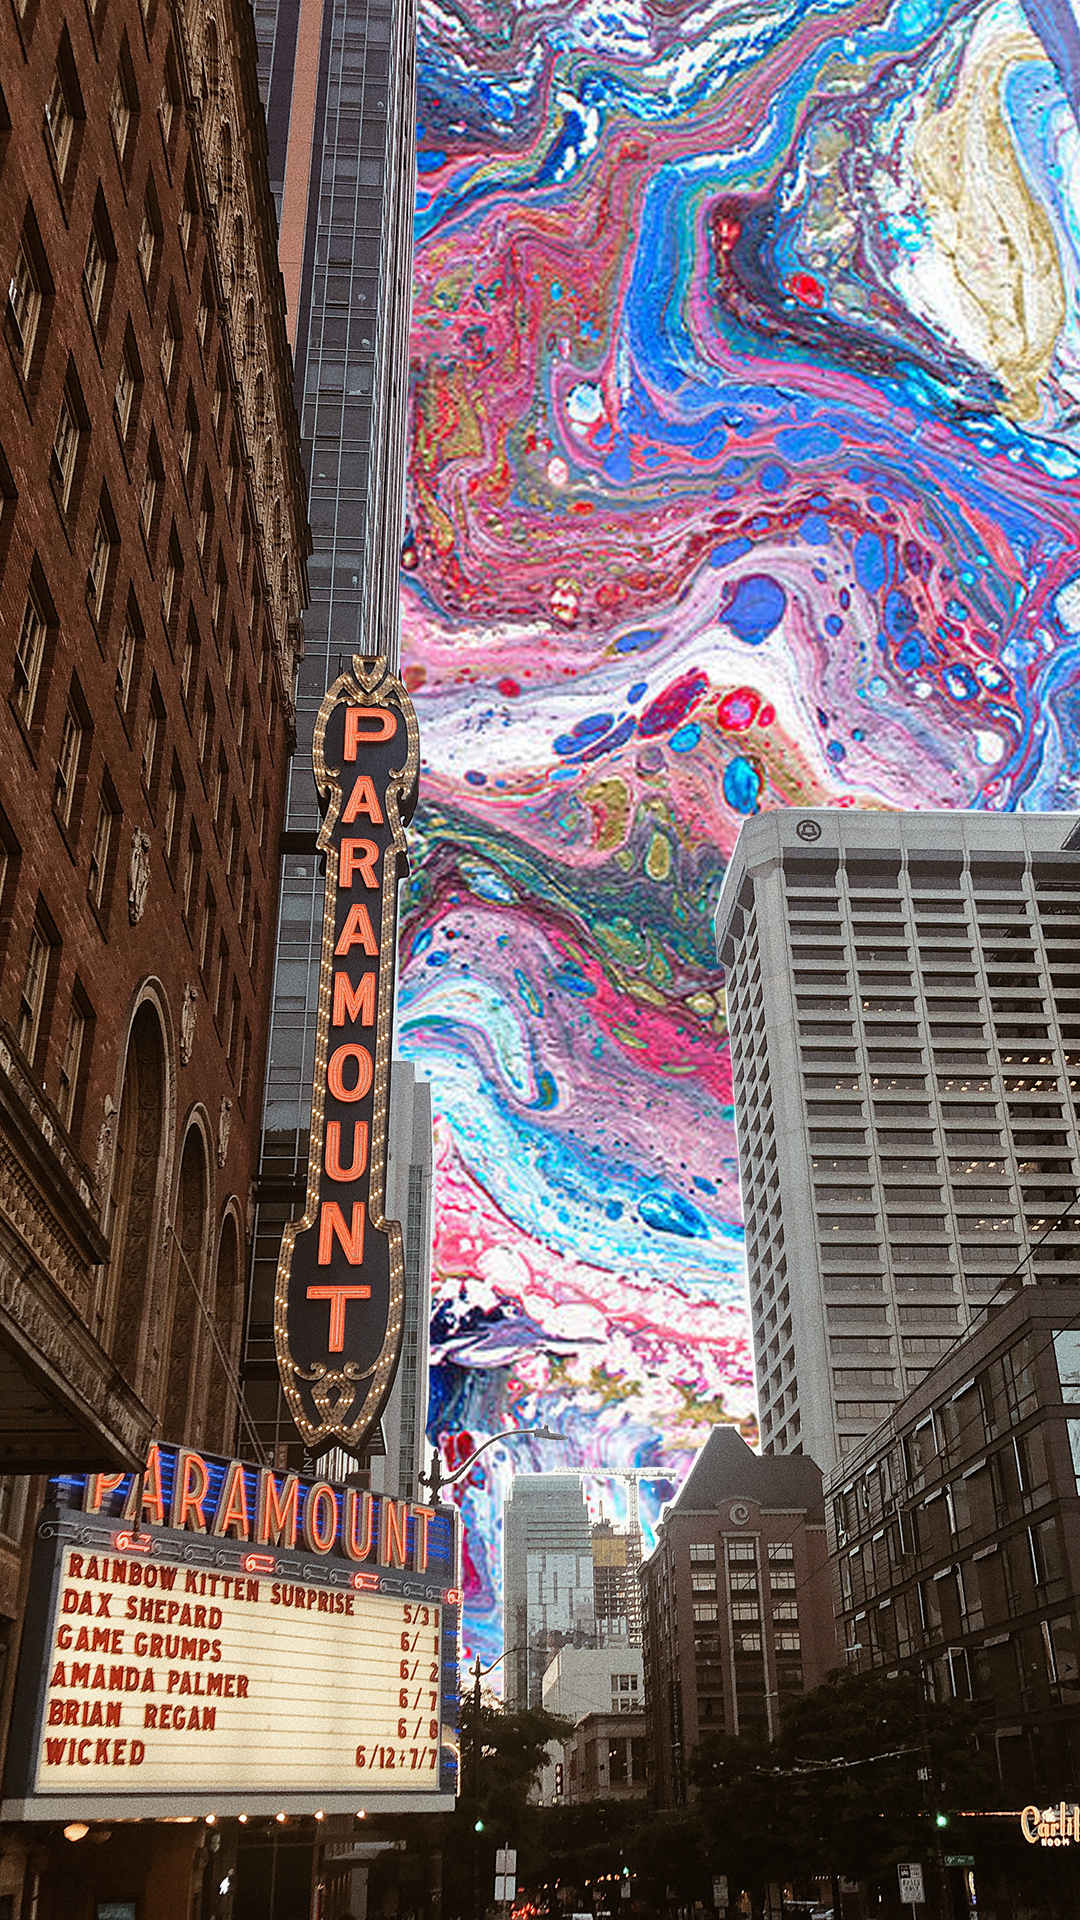 Rainbow Kitten Surprise Seattle Wa Paramount Theater Trippy Wallpaper Trippy Pictures Trippy Photos